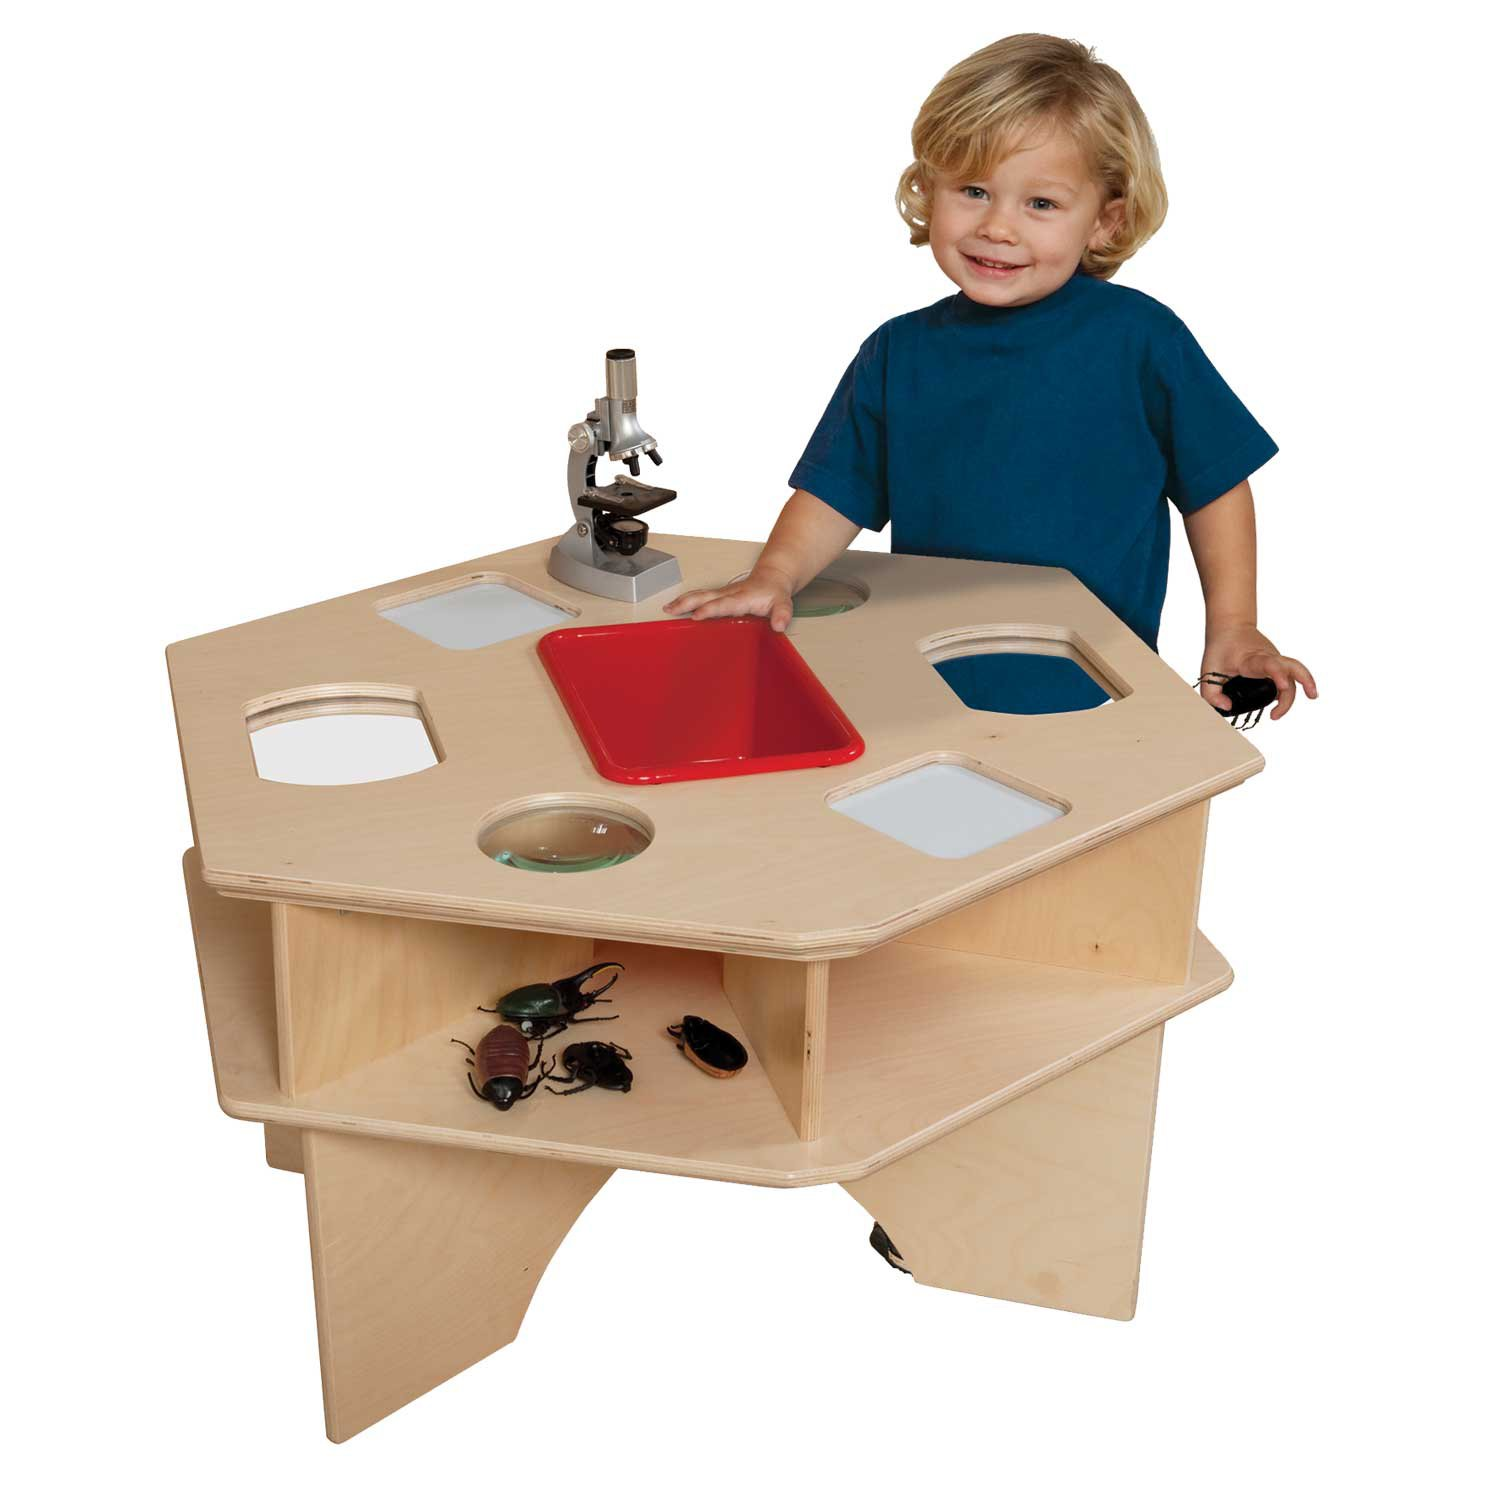 Wood Designs Wd93021 Deluxe Science Activity Table